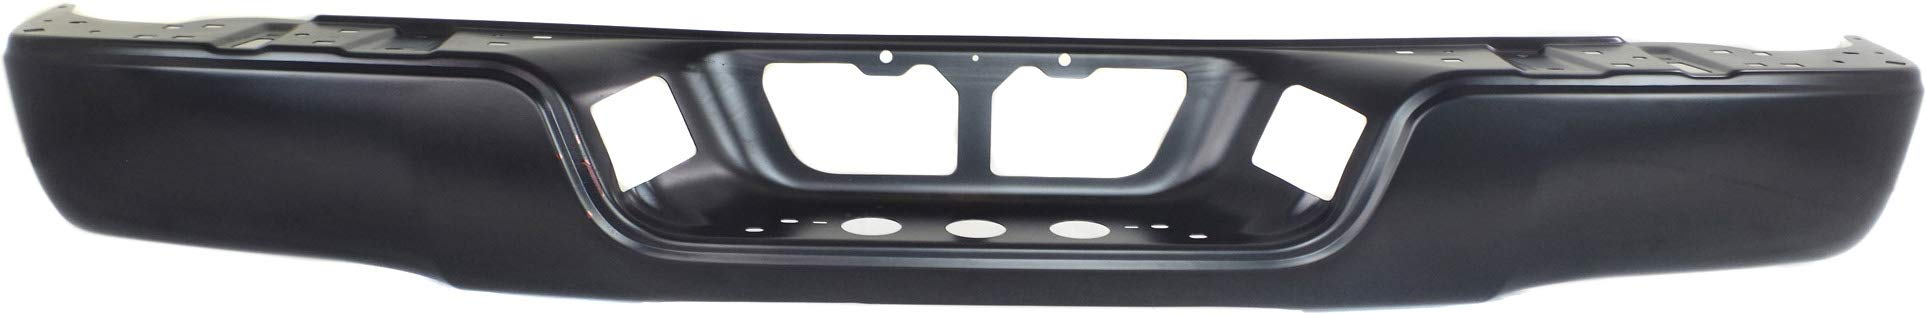 Step Bumper Face Bar Compatible with 2007-2013 Toyota Tundra Black Steel with Rock Warrior Pkg Fleetside